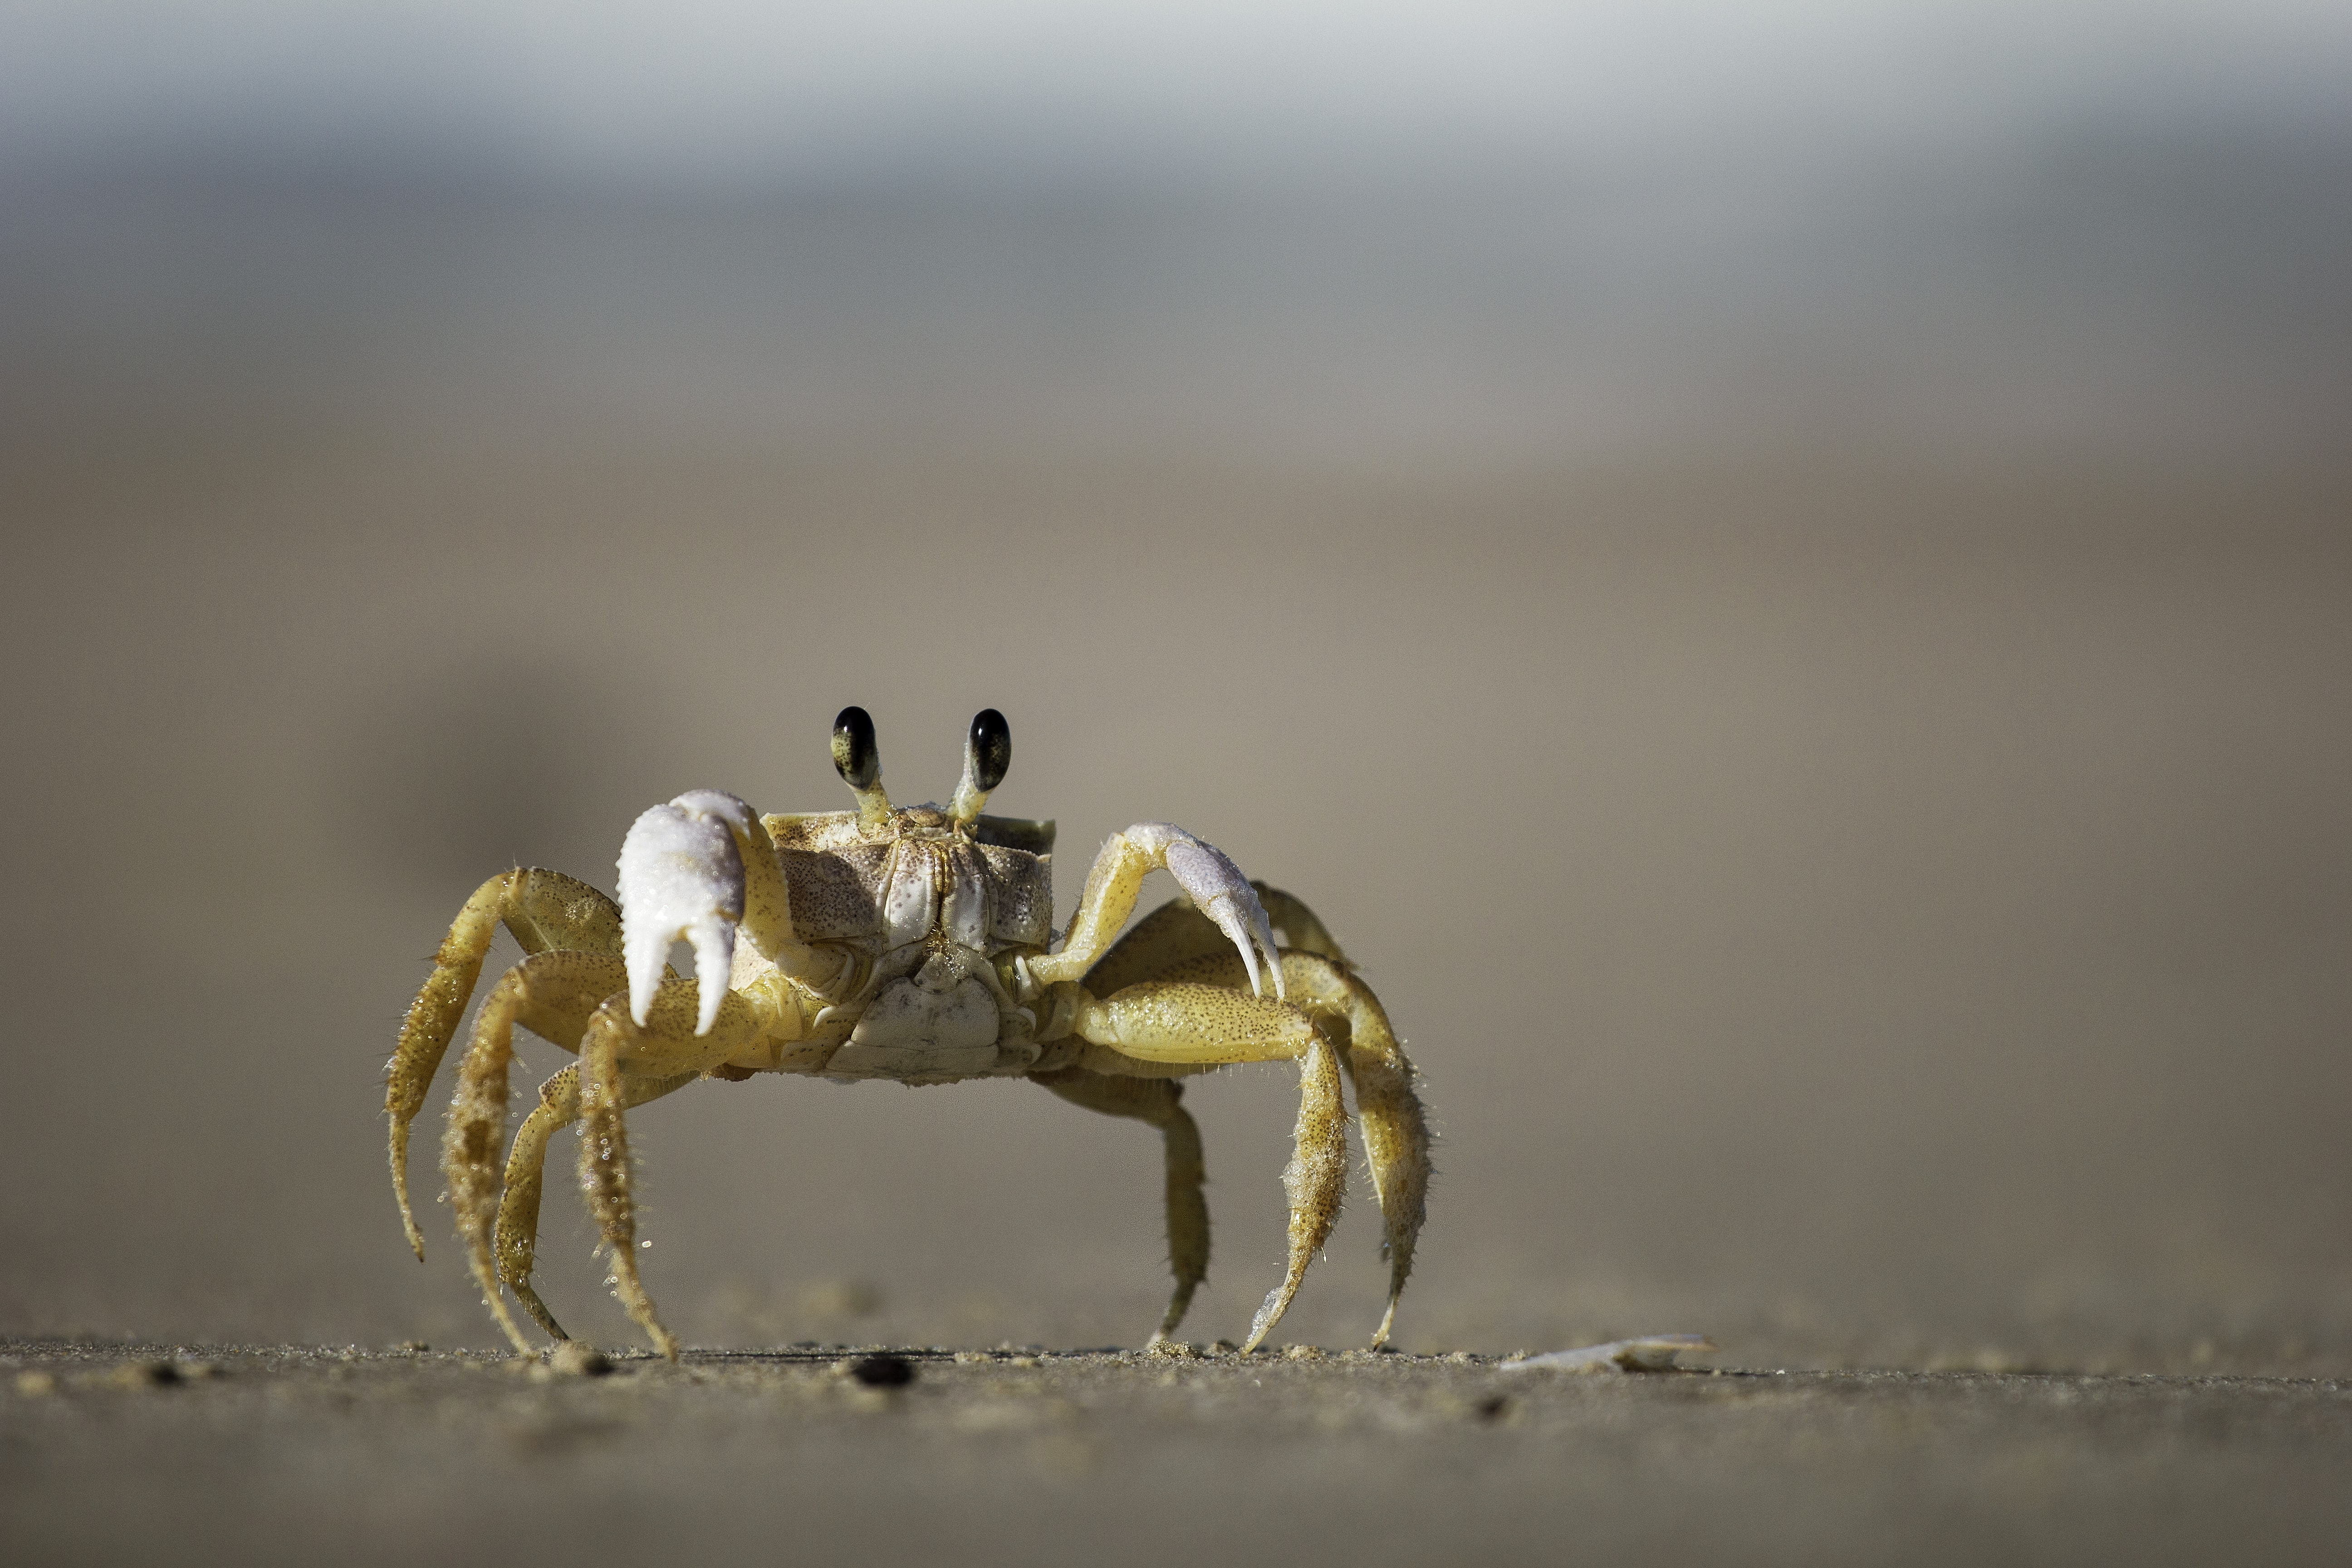 Macro shot of a fiddler crab on a sand beach at Barra da Lagoa